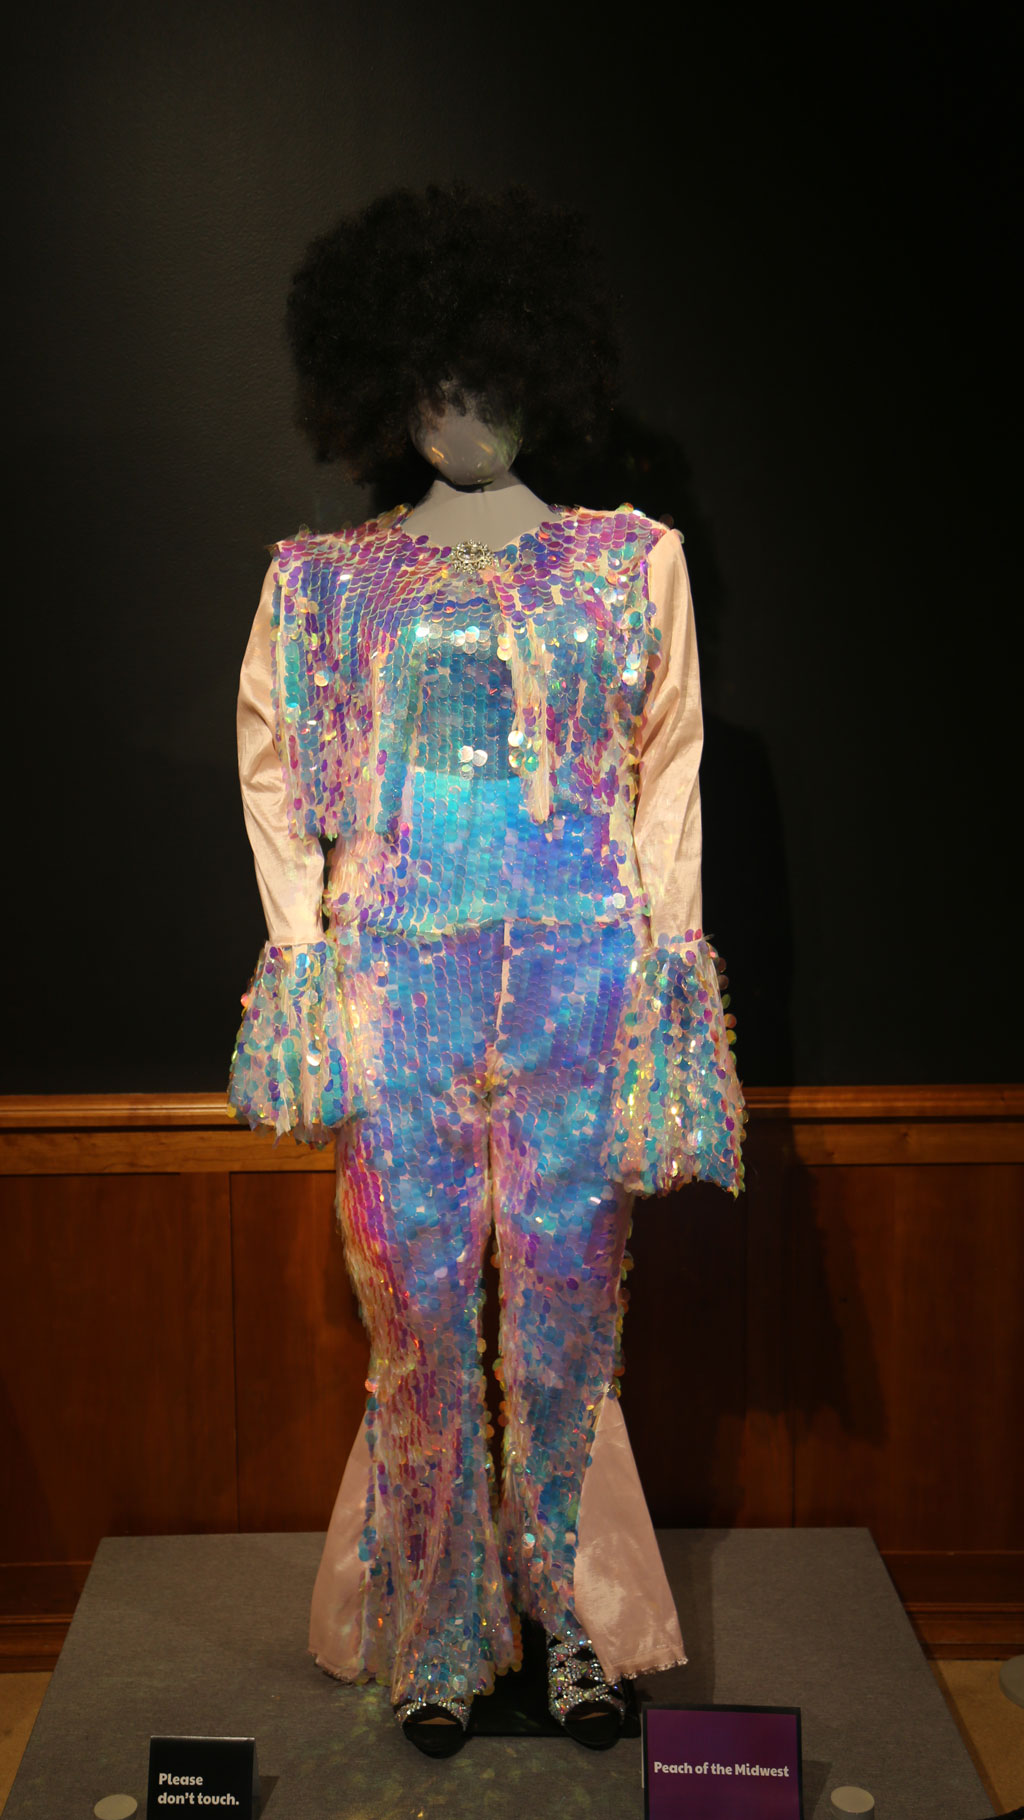 full view of mannequin with a sequined costume and Afro